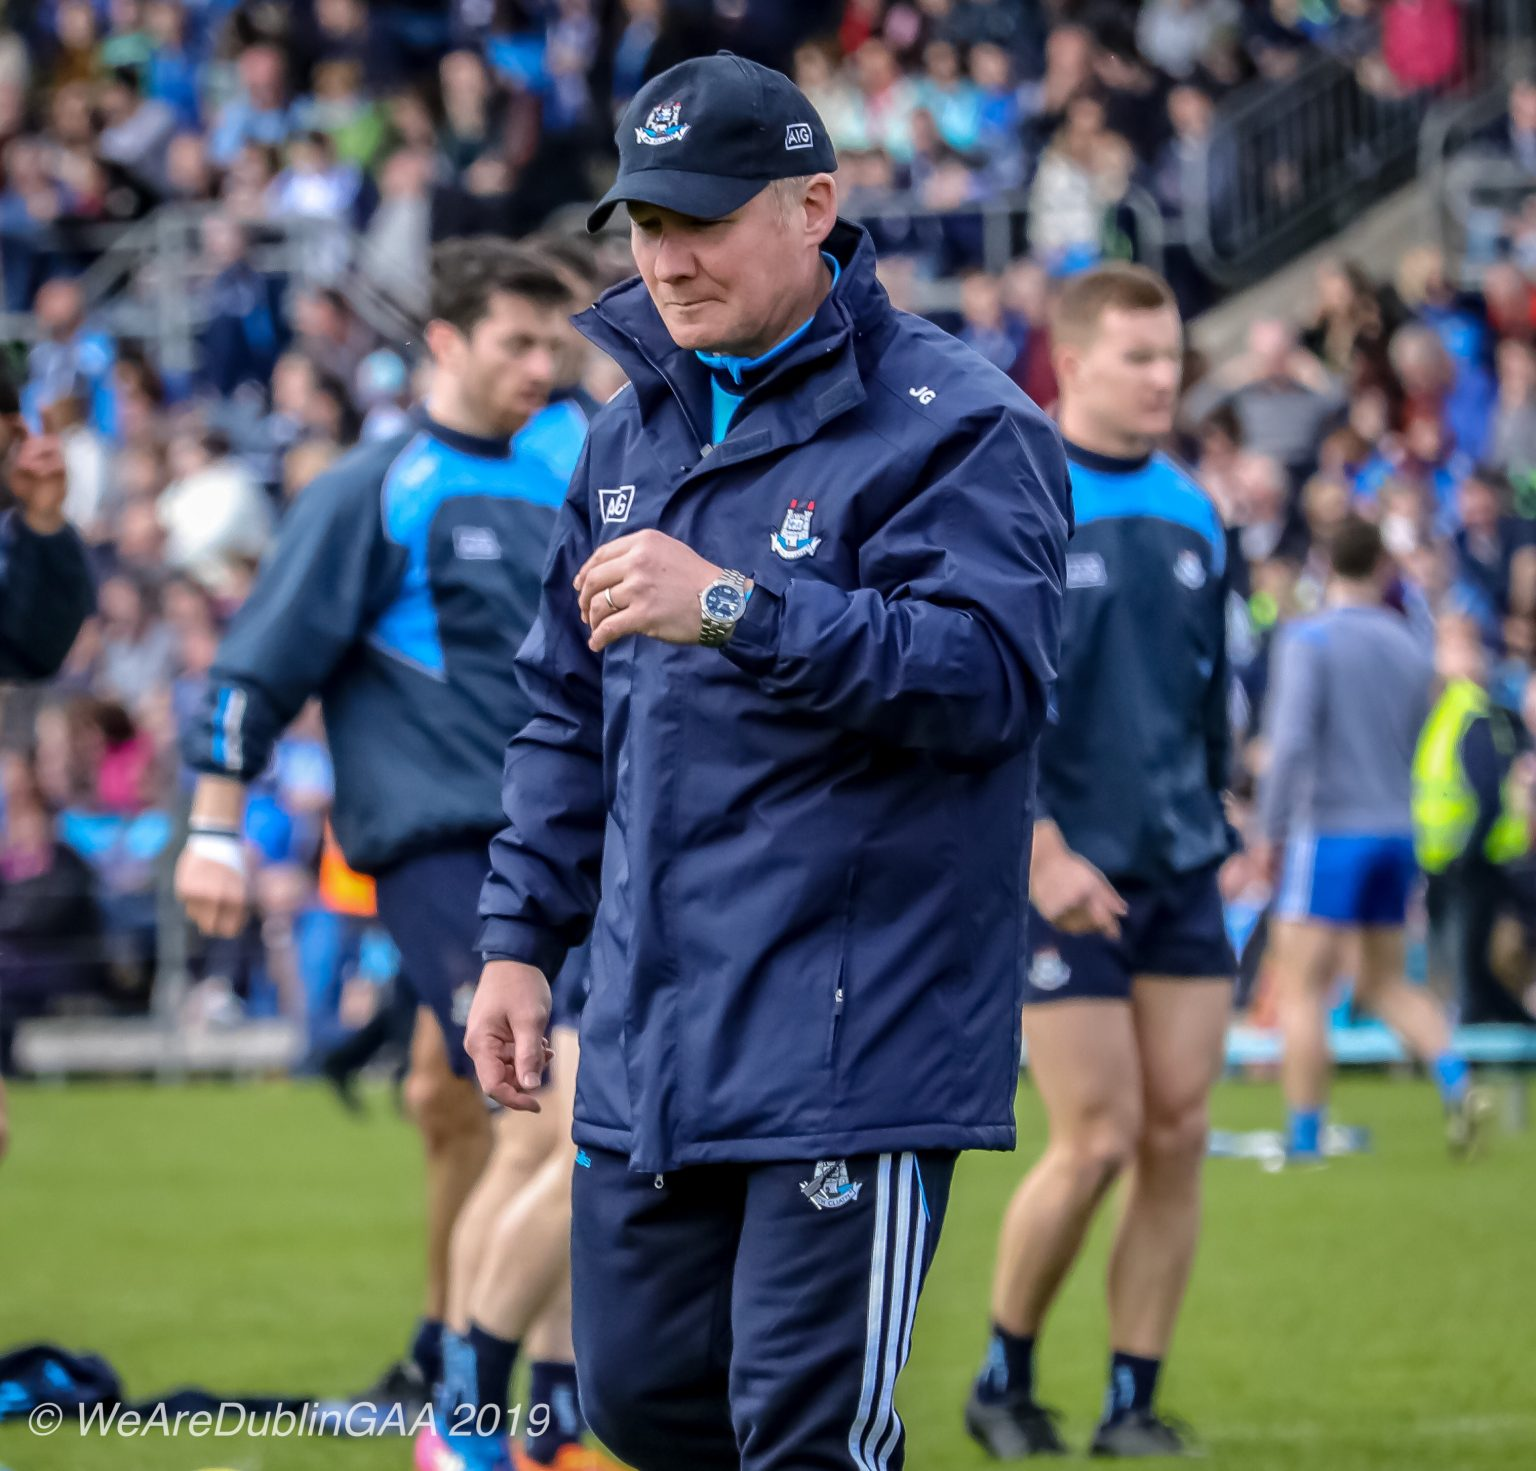 Dublin Football manager Jim Gavin in a Navy jacket, bottoms and baseball cap with the Dublin crest believes Gaelic football is just one rule change from becoming Aussie Rules Football